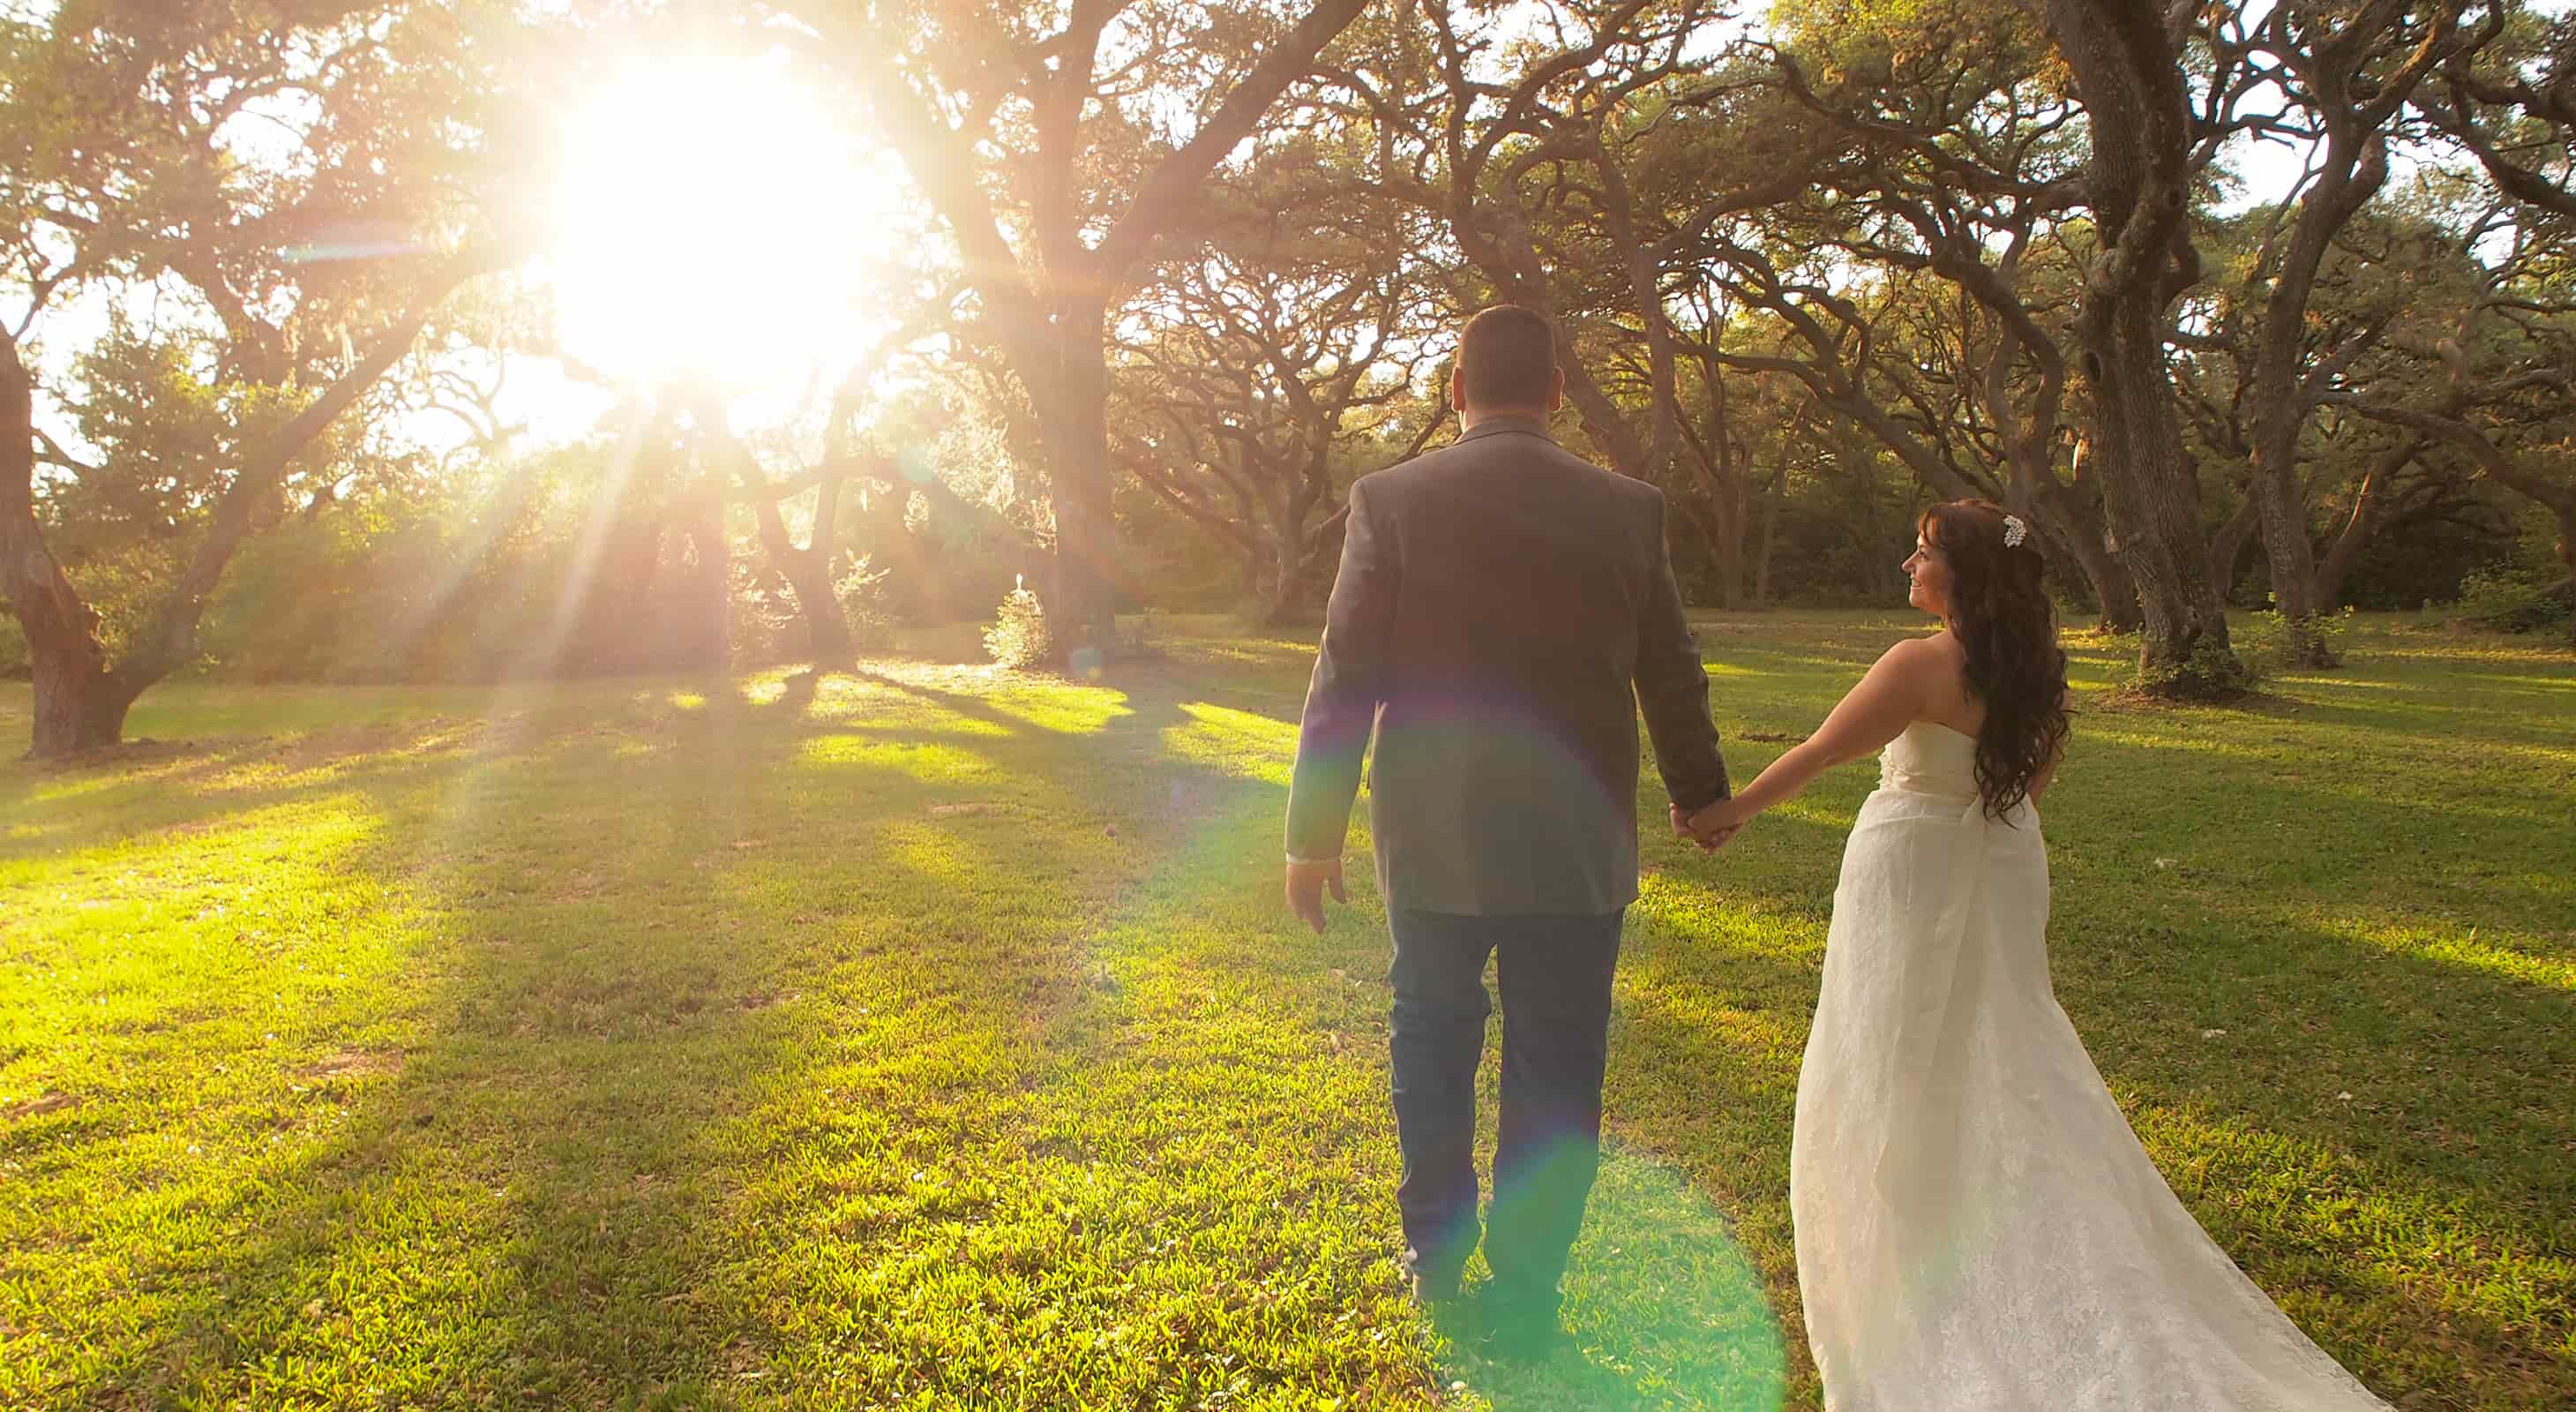 Bride and groom holding hands walking by the trees at sunset